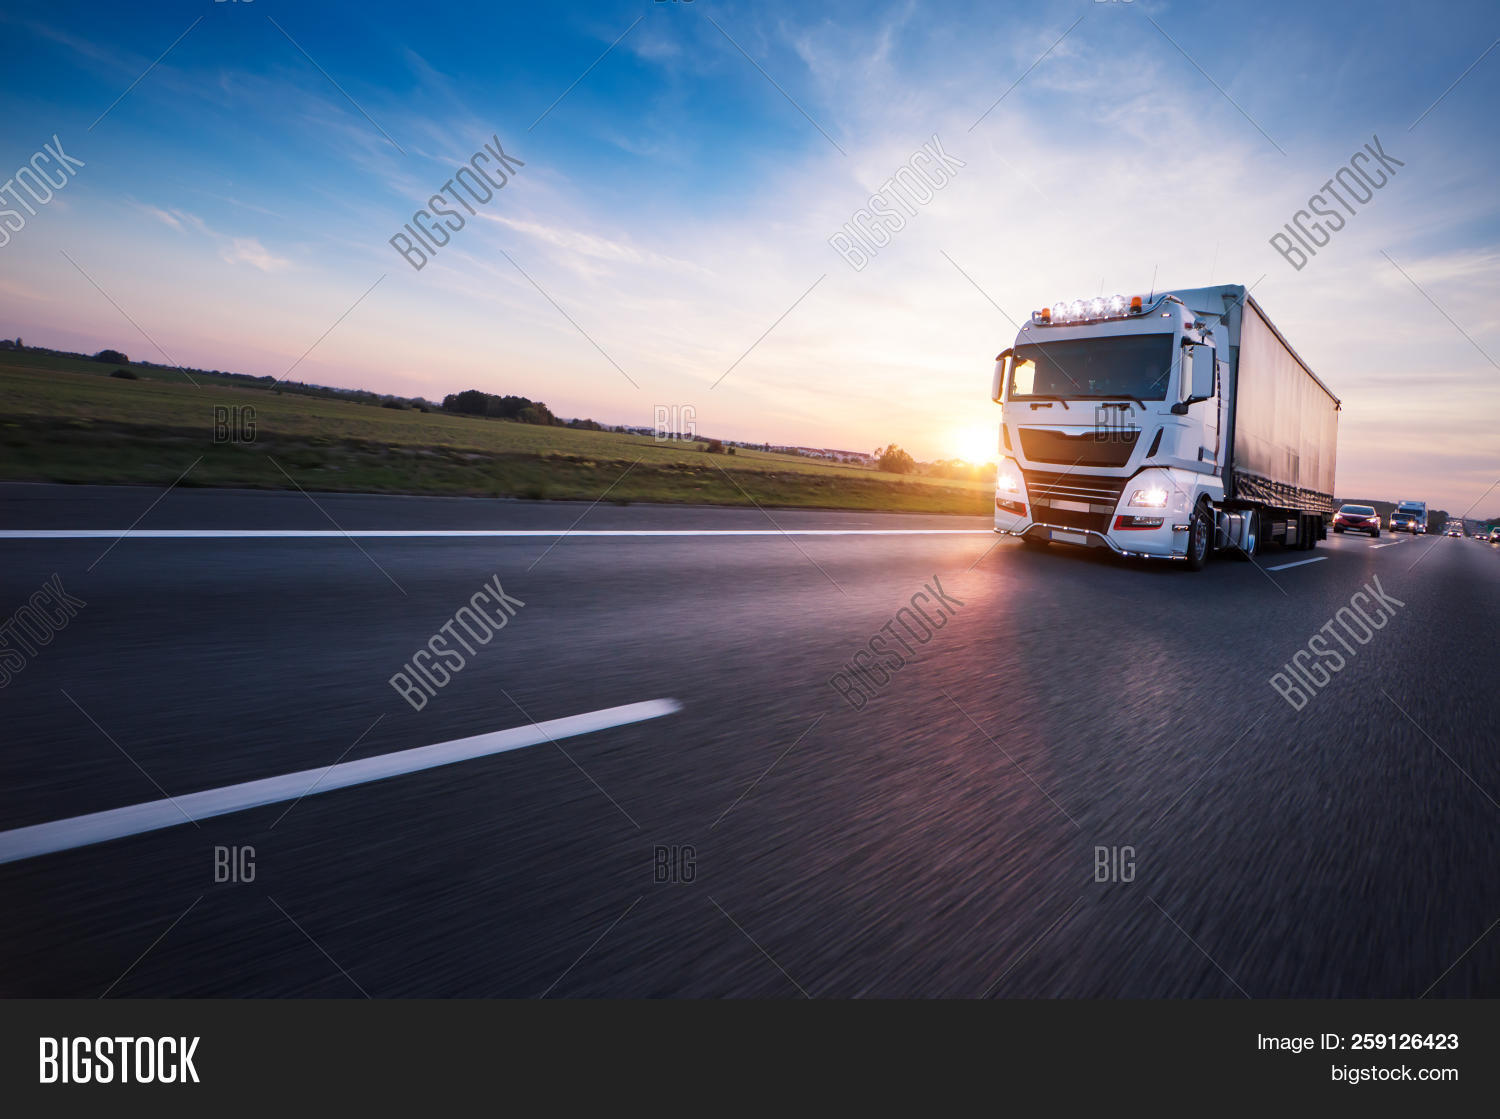 car,cargo,delivery,drive,driver,environment,fast,field,freight,goods,haulage,heavy,high,highway,import,industrial,industry,international,international transport,landscape,light,line,load,logistic,logistics,logo free,long,lorry,meadow,merchandise,motorway,perspective,road,shipping,sky,speed,stock,storage,summer,sunset,traffic,trailer,transit,transport,transportation,transporter,truck,trucking,vehicle